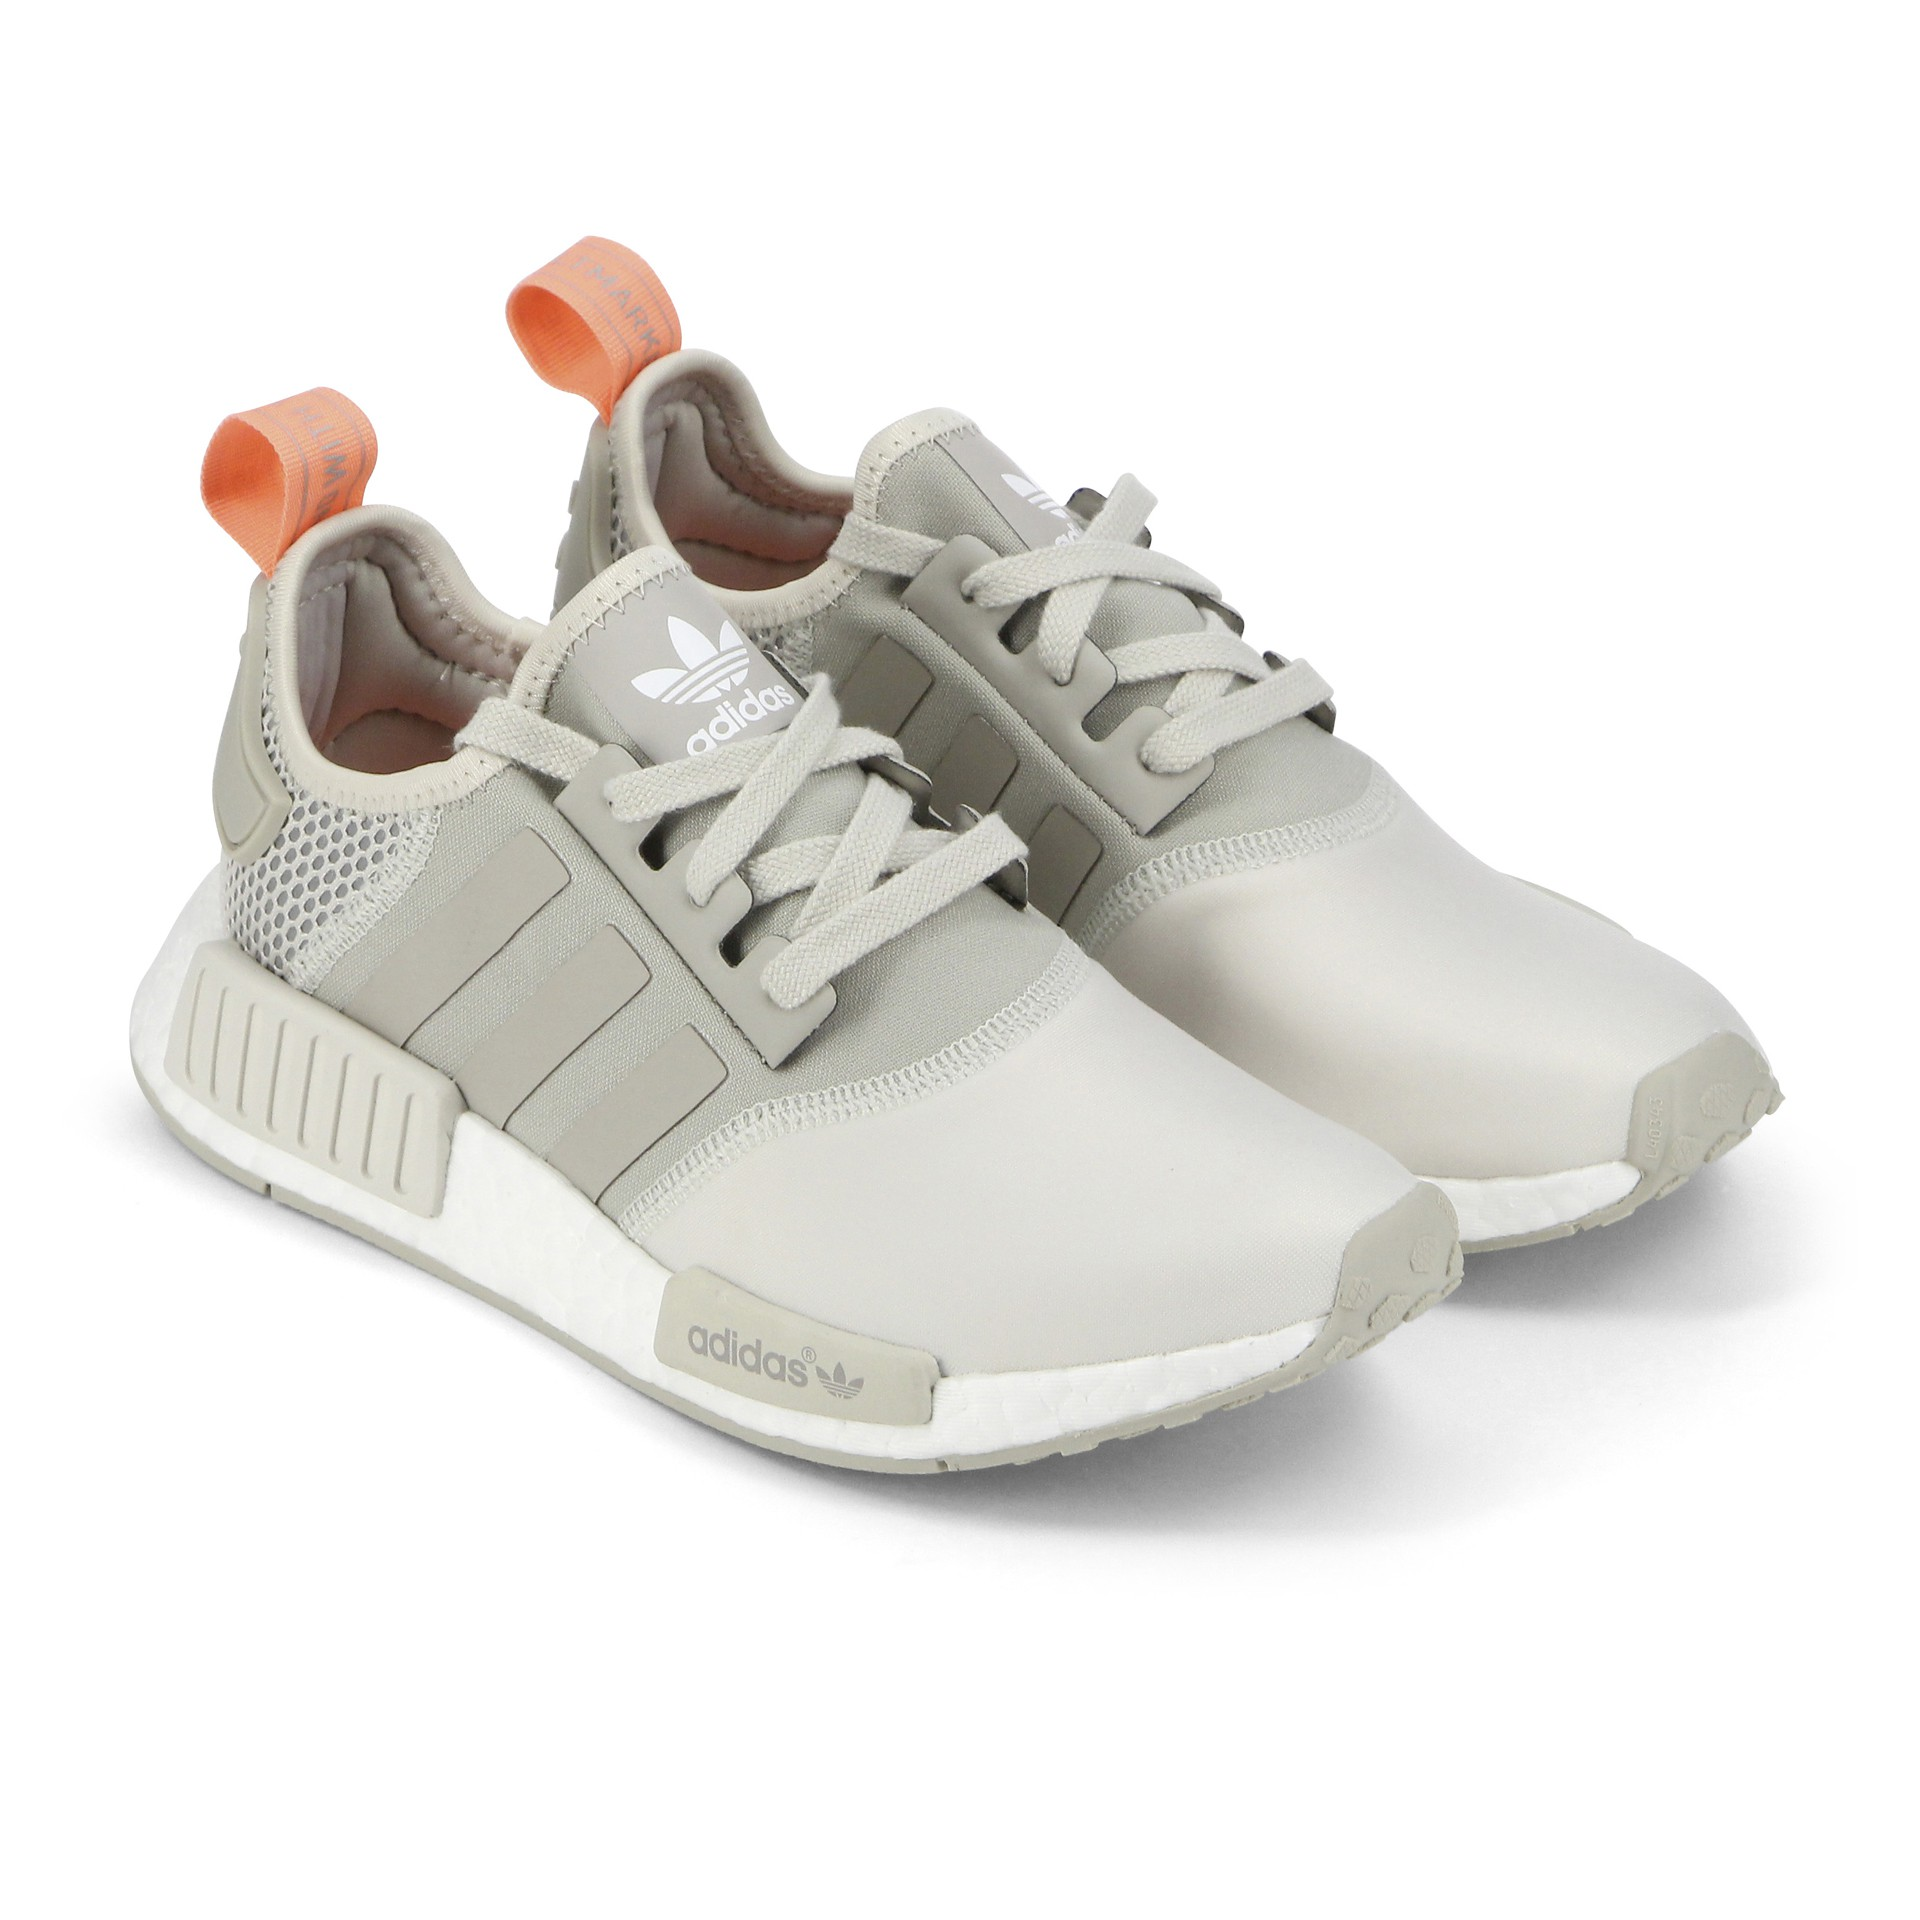 adidas nmd blanche pas cher